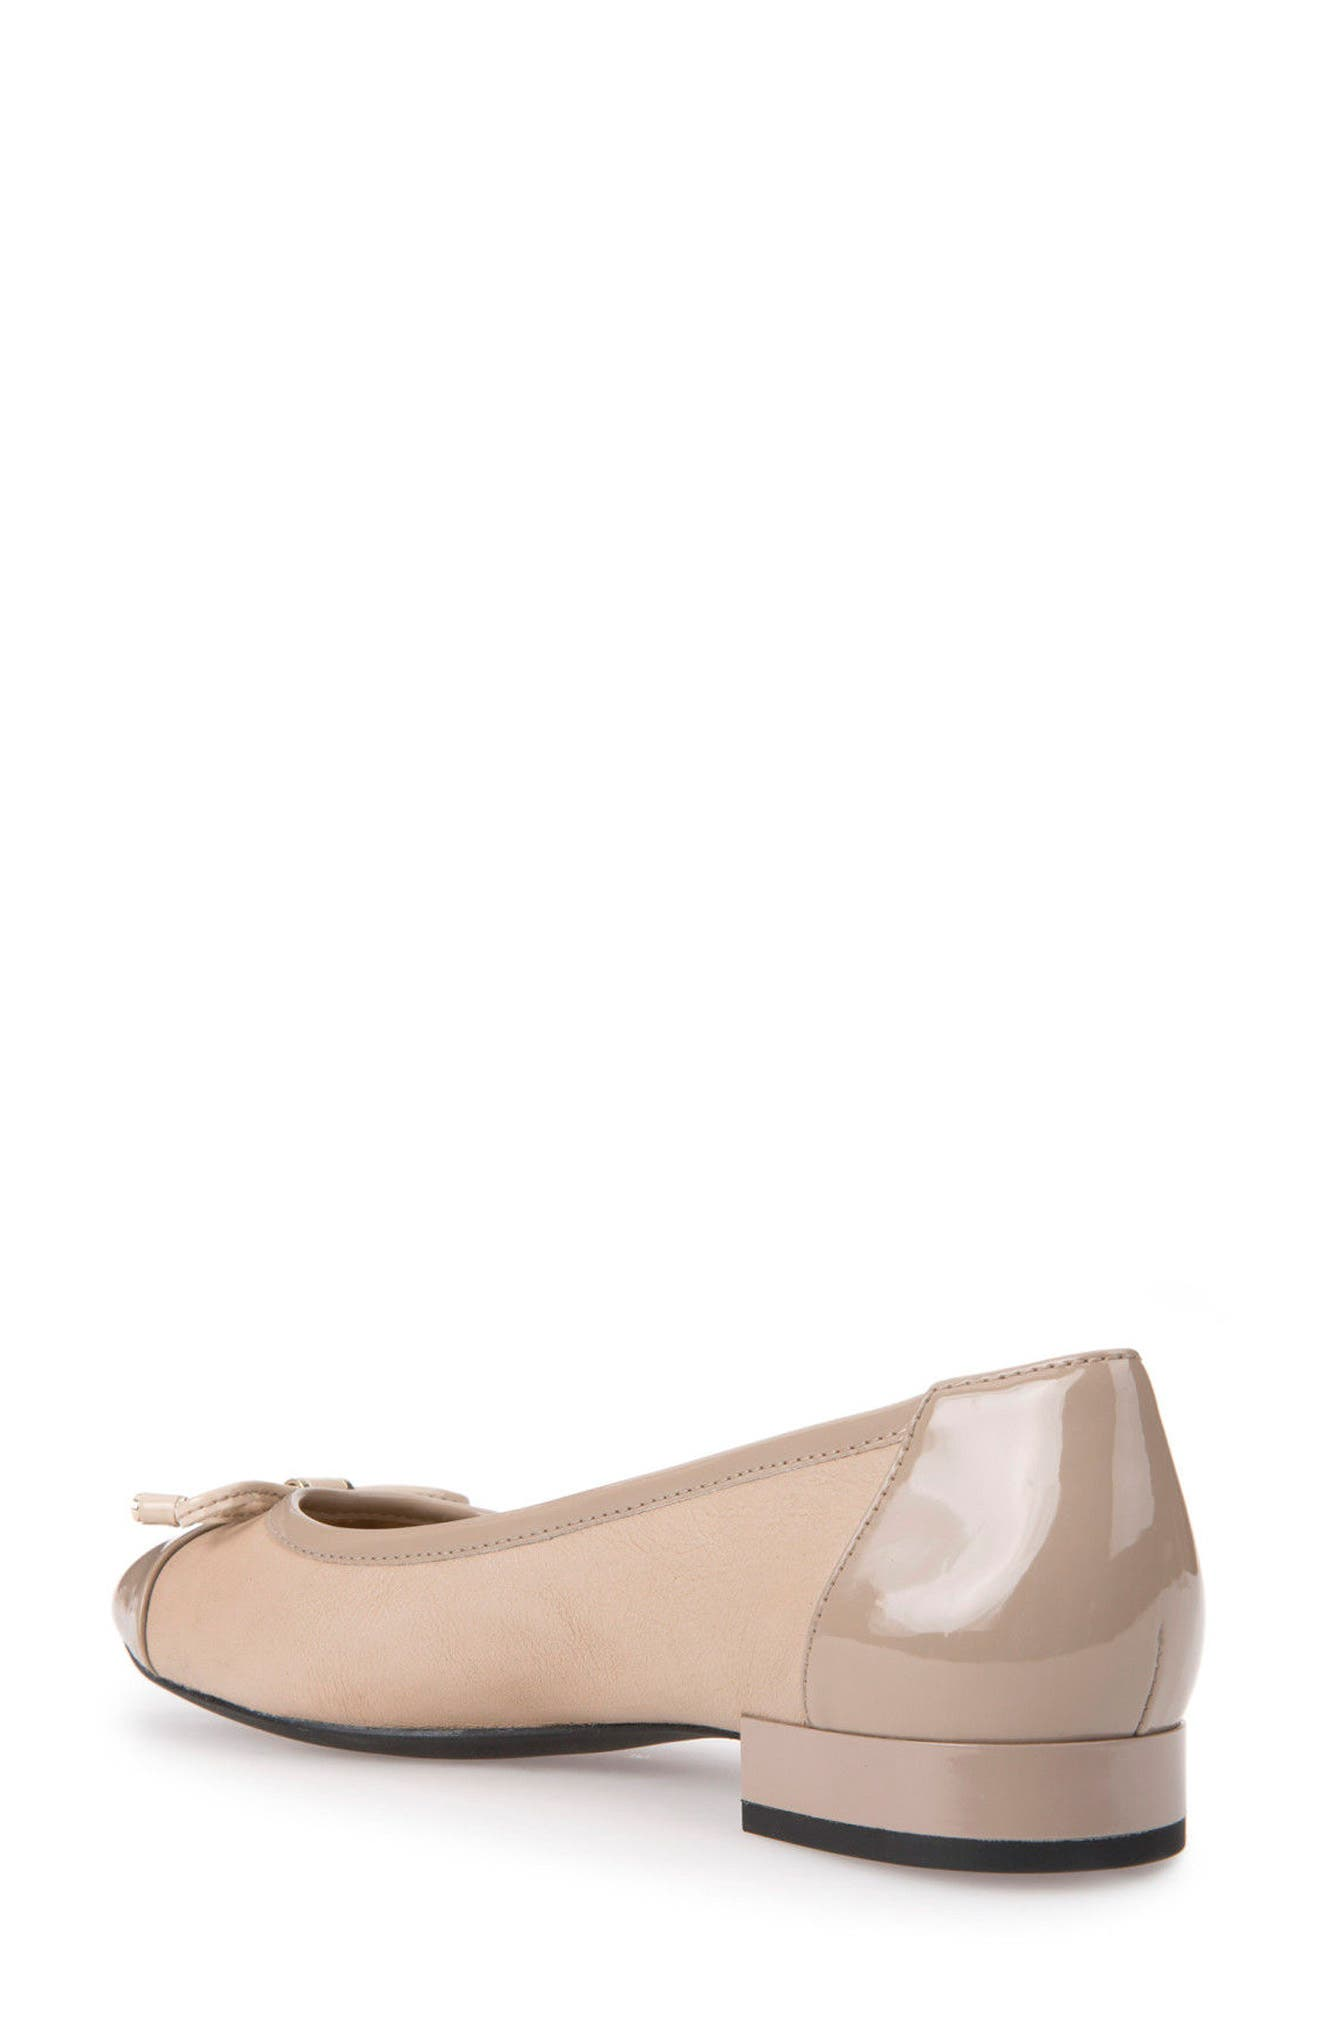 Wistrey Flat,                             Alternate thumbnail 2, color,                             TAUPE LEATHER